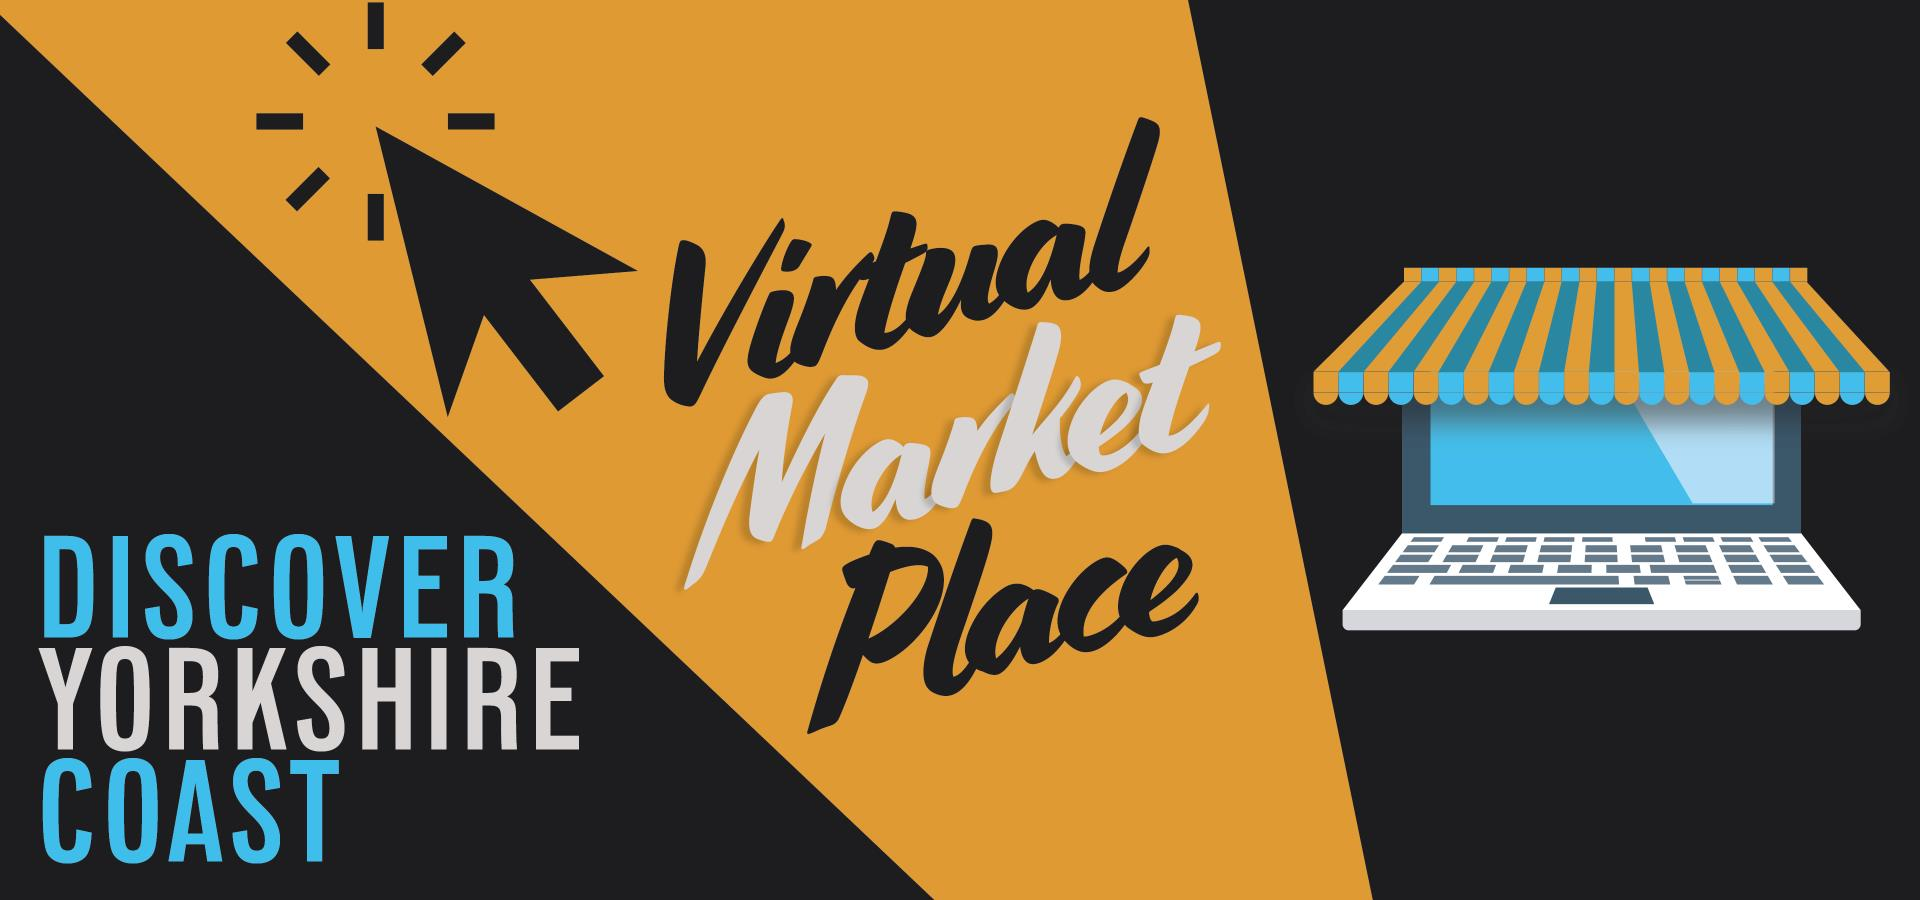 An Image of the Virtual Market Place at Discover Yorkshire Coast